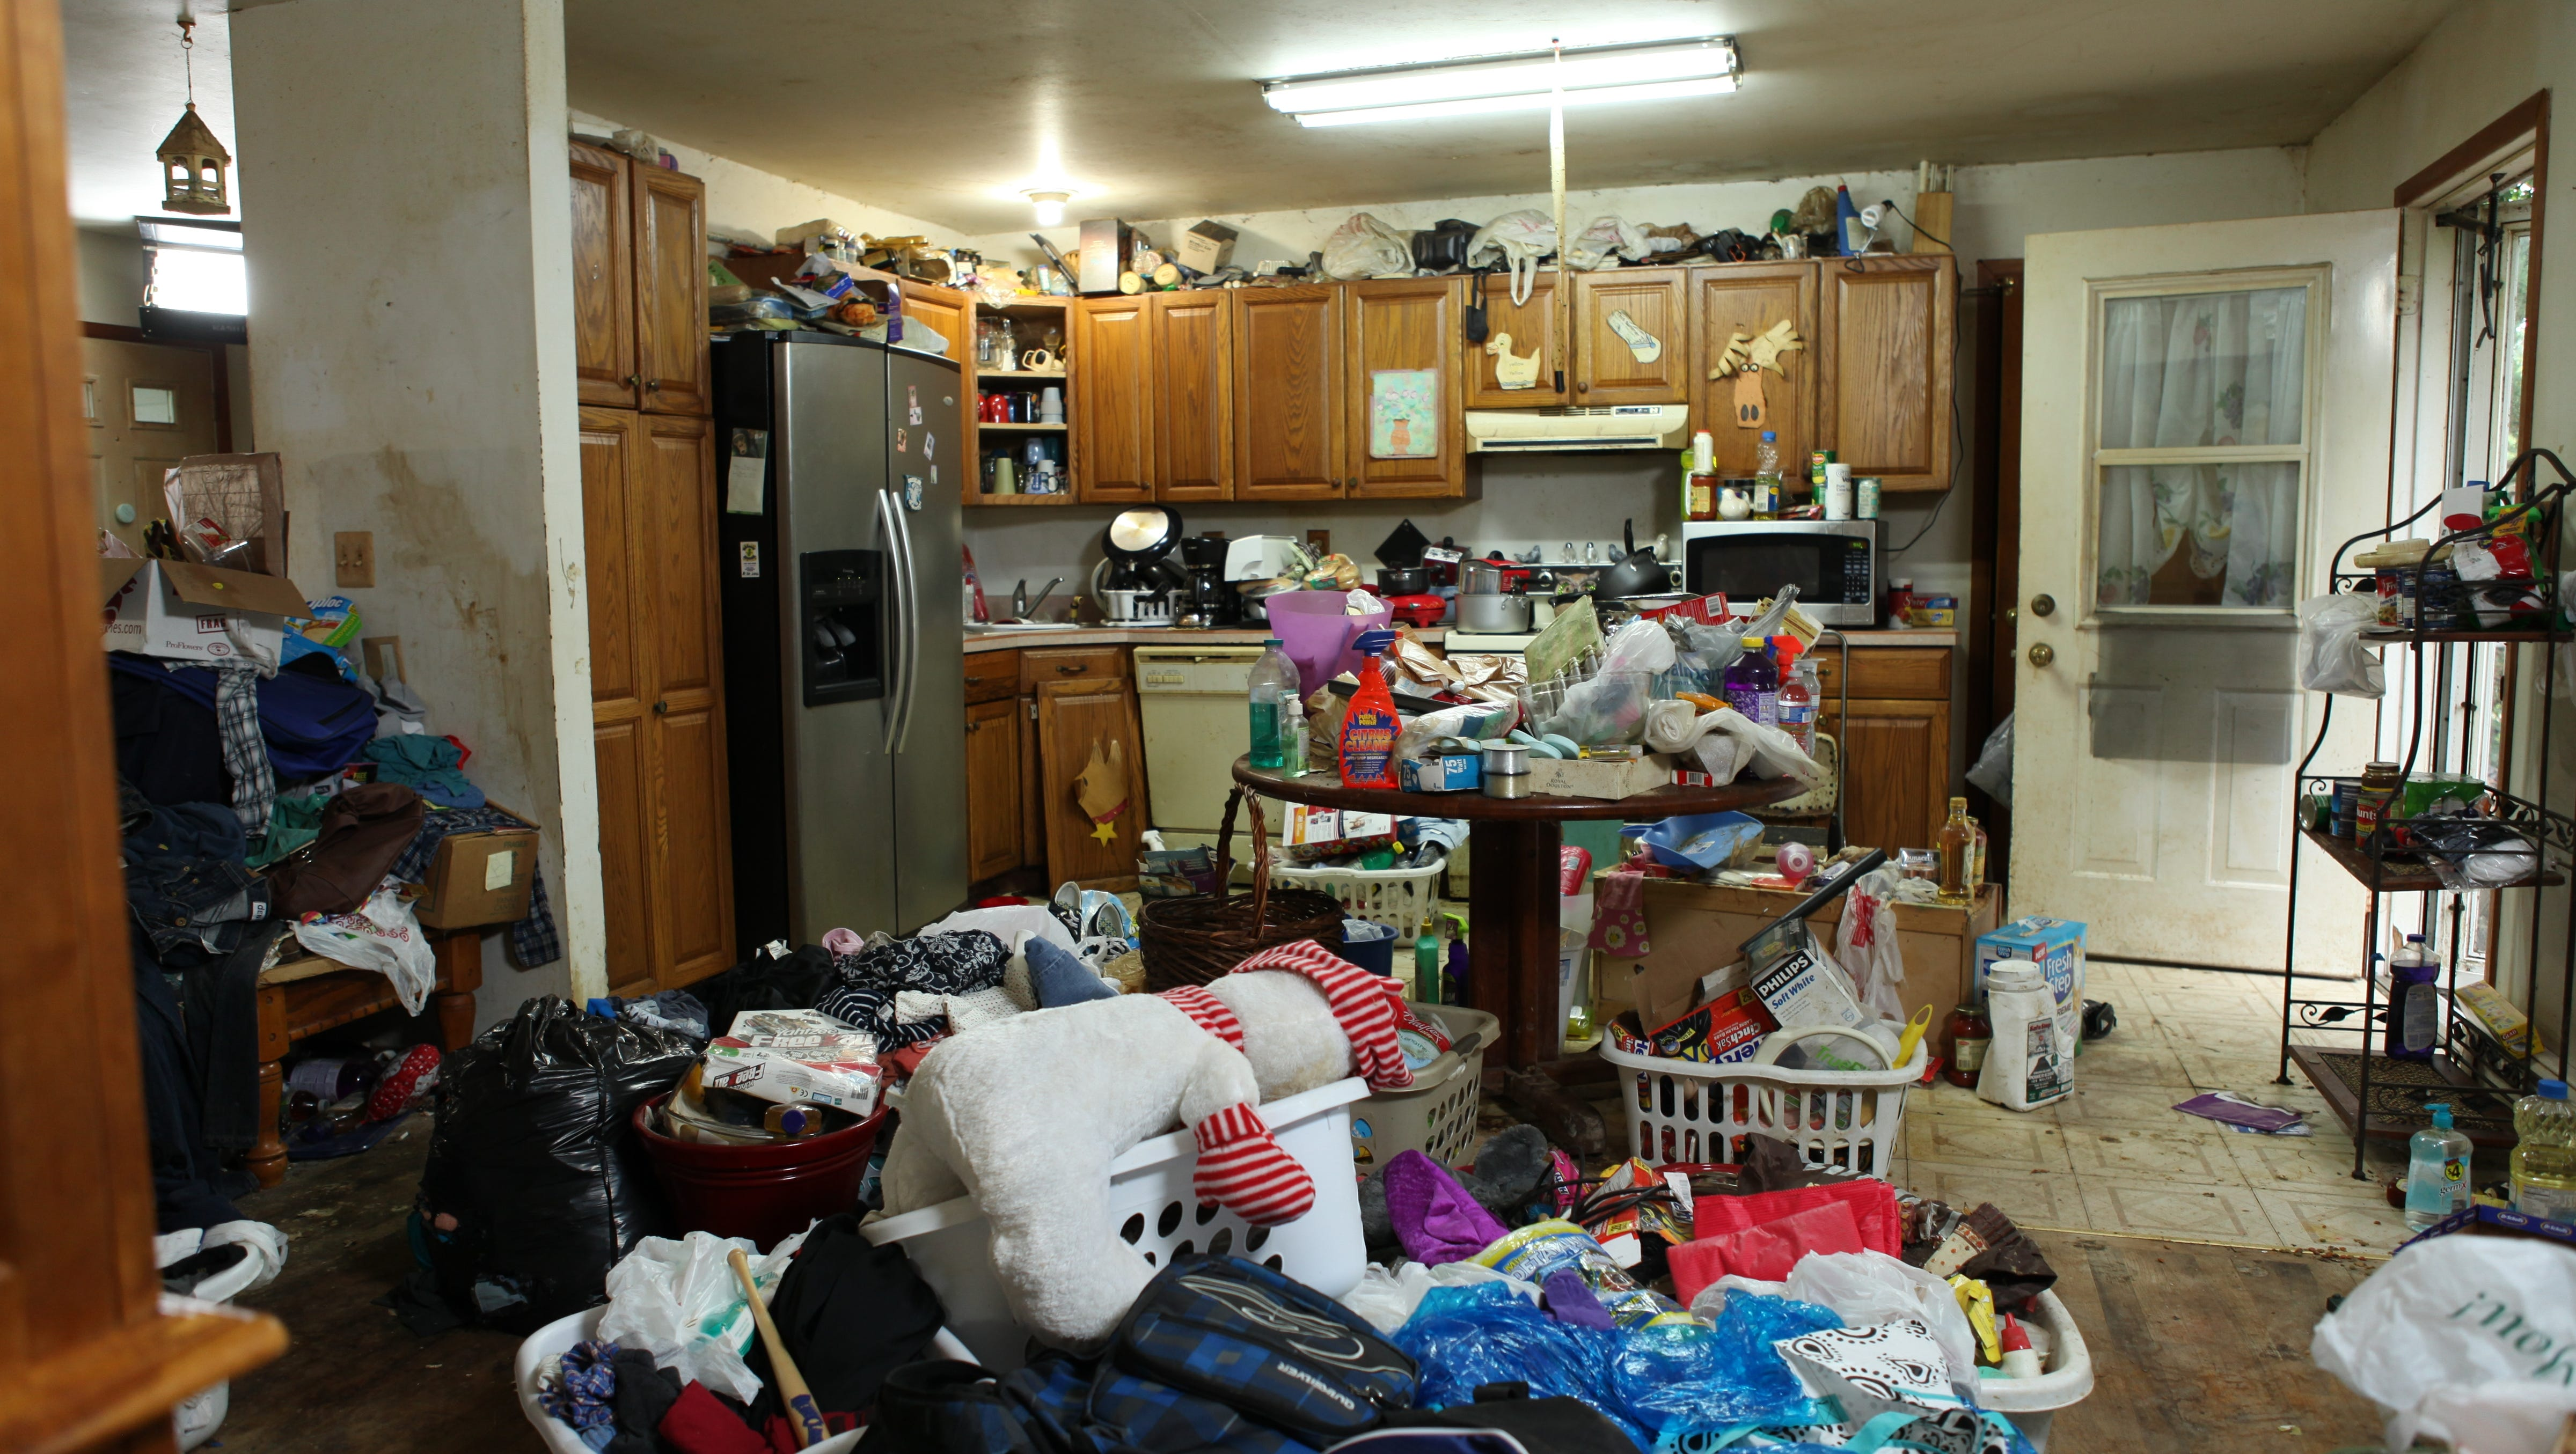 Living with a hoarder spouse